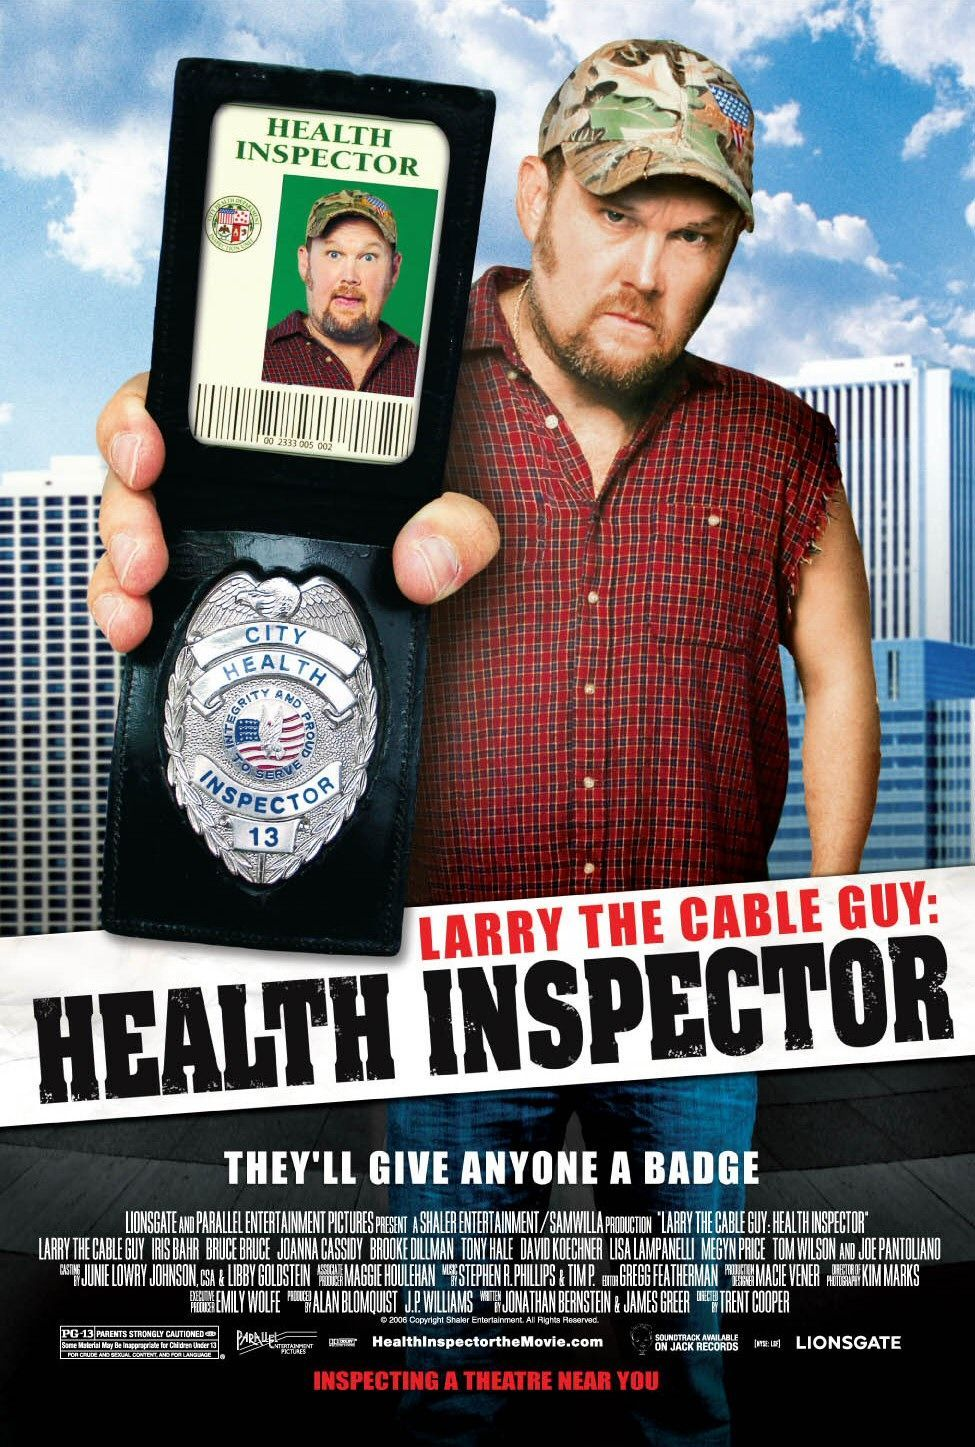 Larry the Cable Guy Health Inspector. I was the